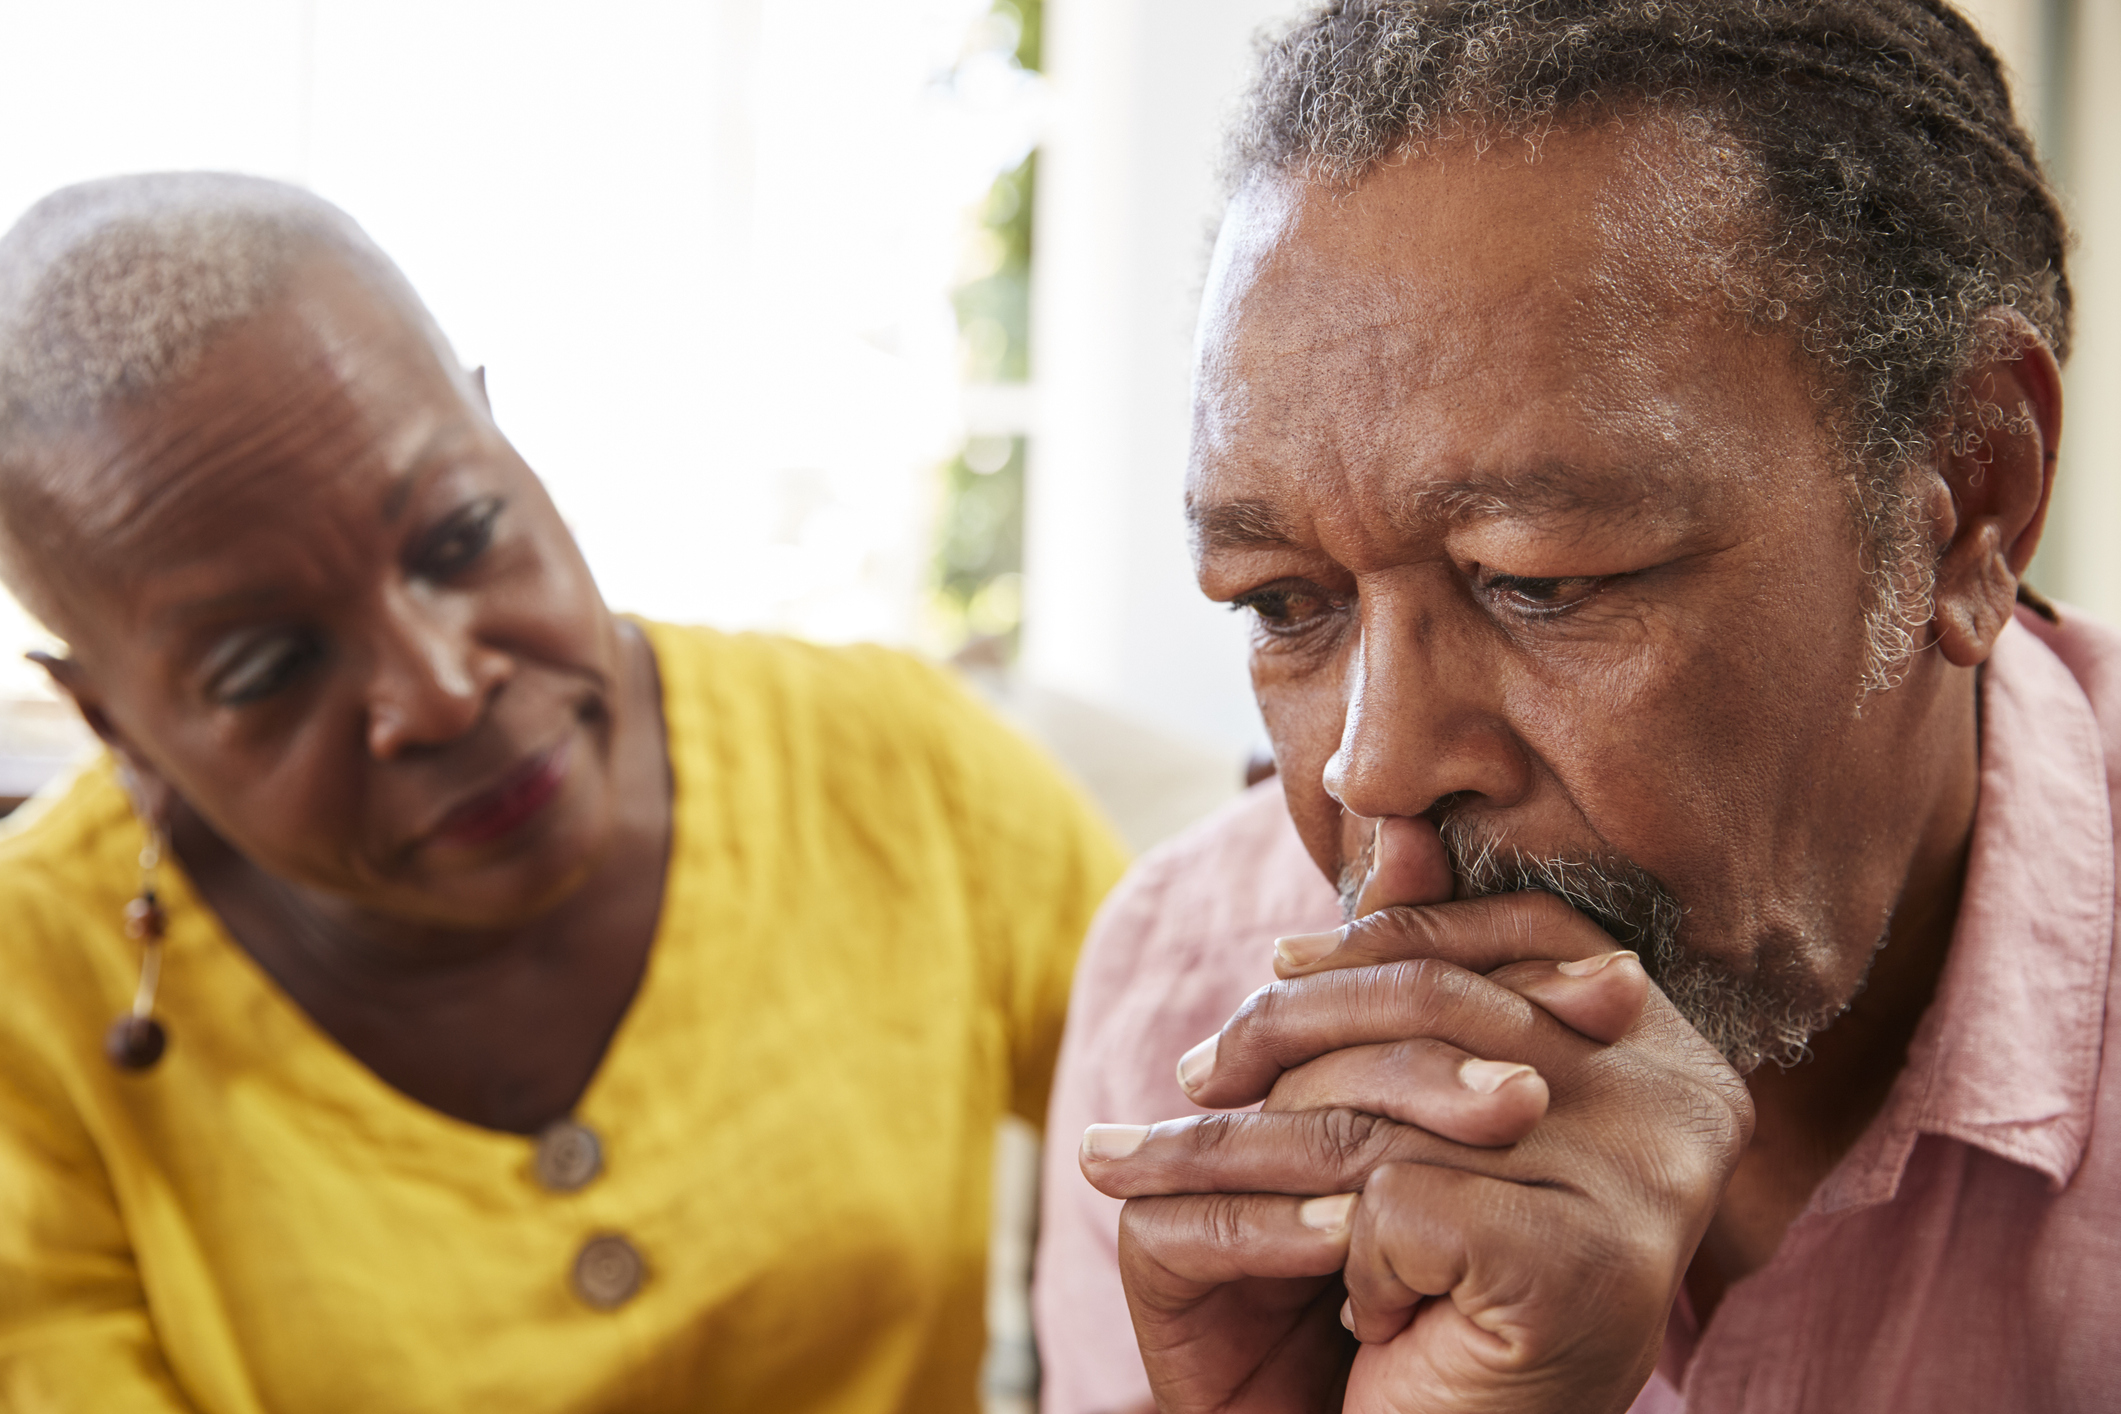 Maintaining your marriage while caregiving can be stressful